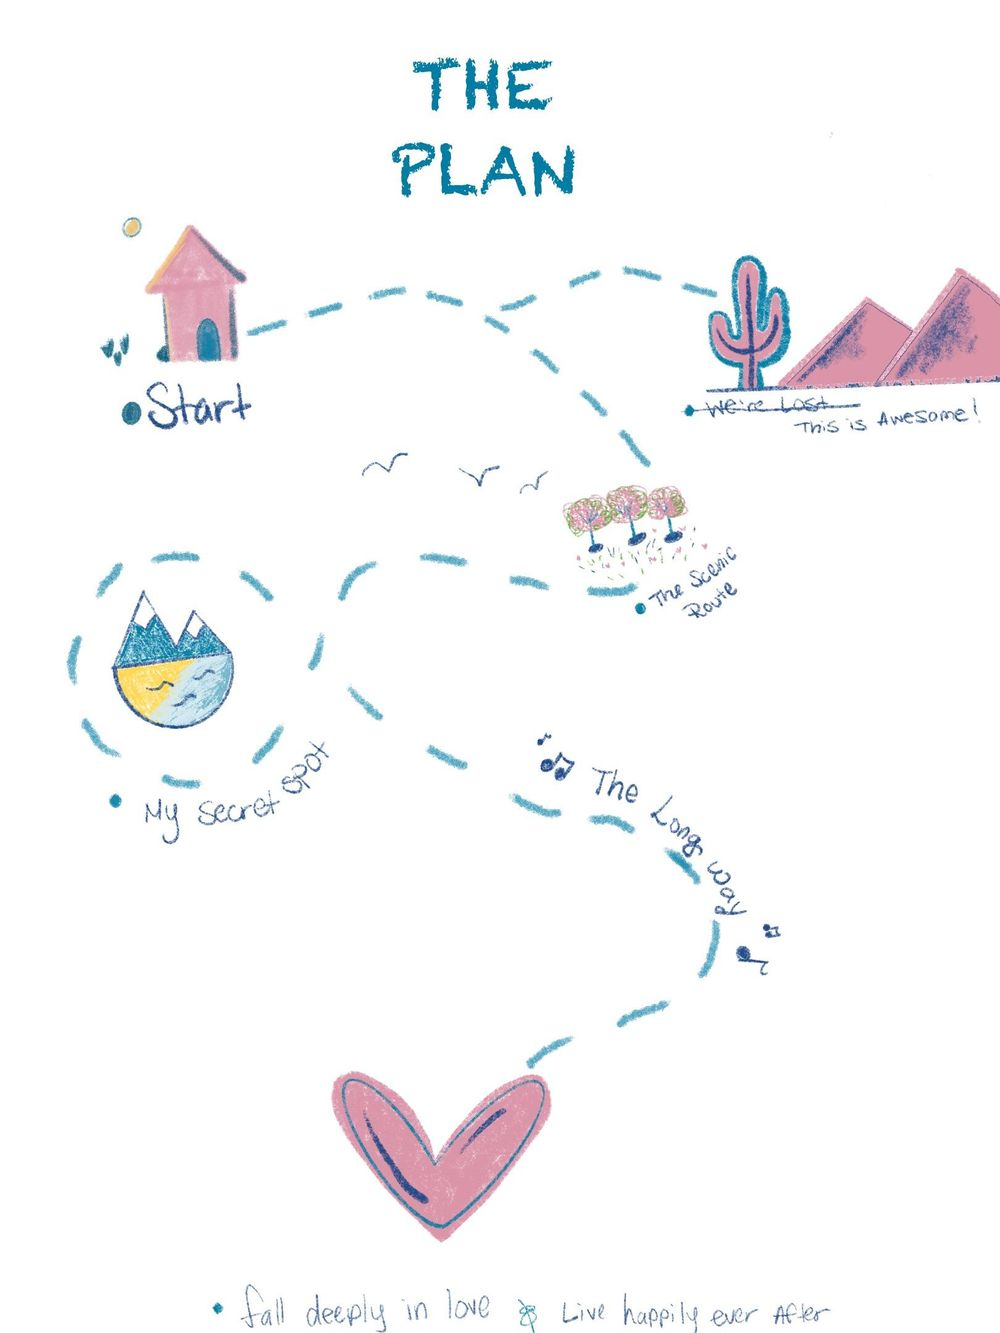 My plan… - image 1 - student project